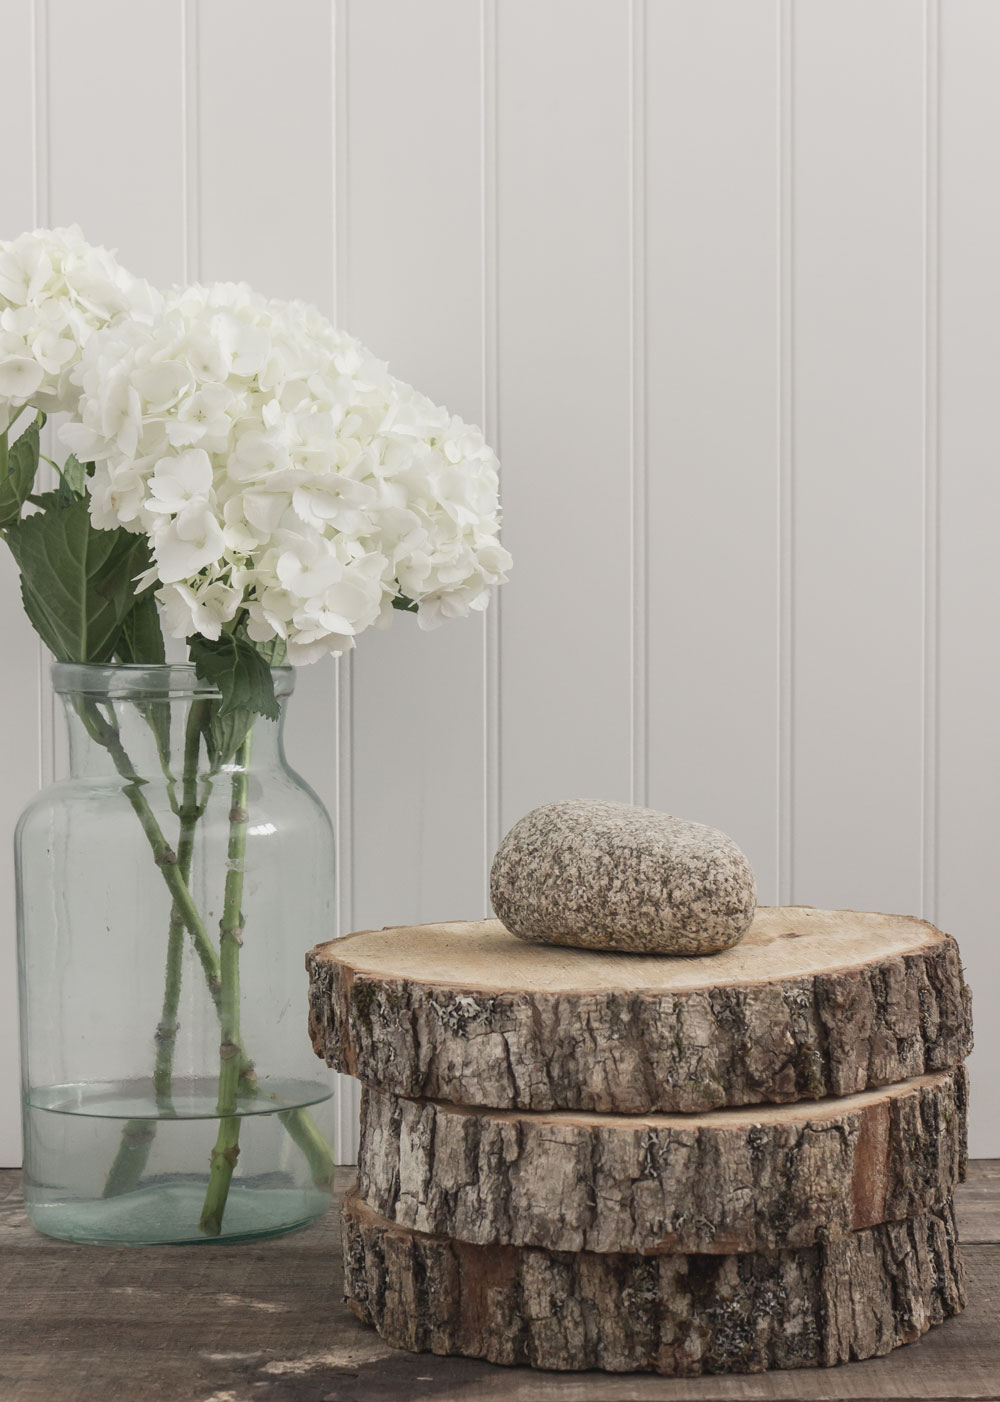 maple tree slices stacked up as a display with a rock